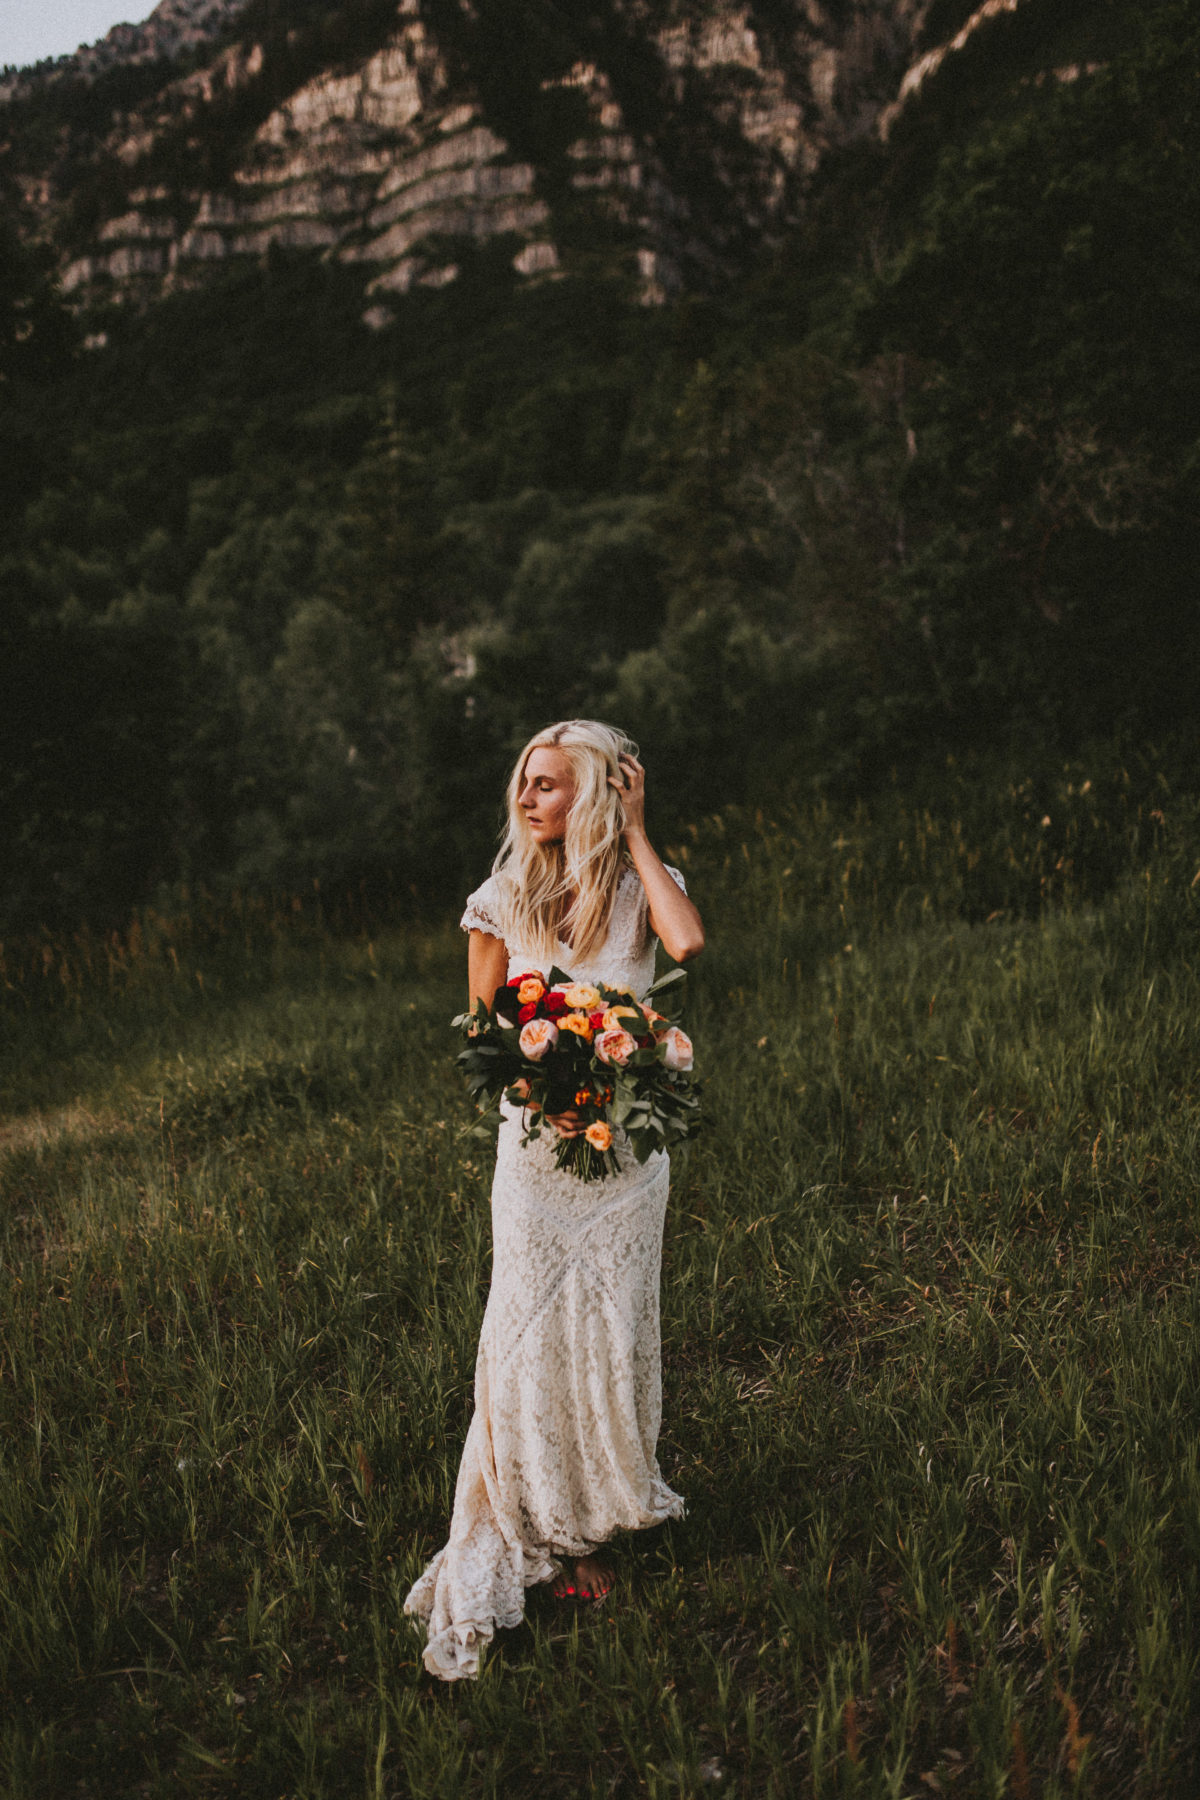 adelaide-lace-bohemian-wedding-dress-shown-with-bouquet